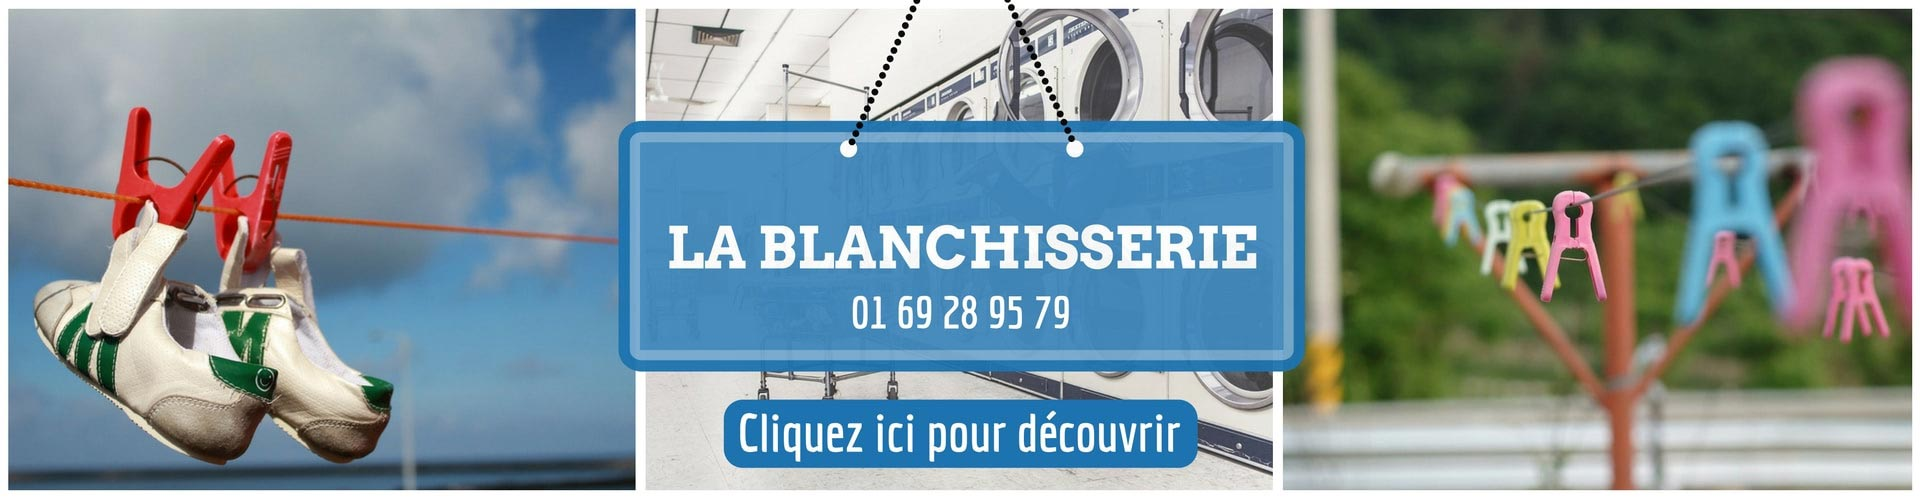 blanchisserie-repassage